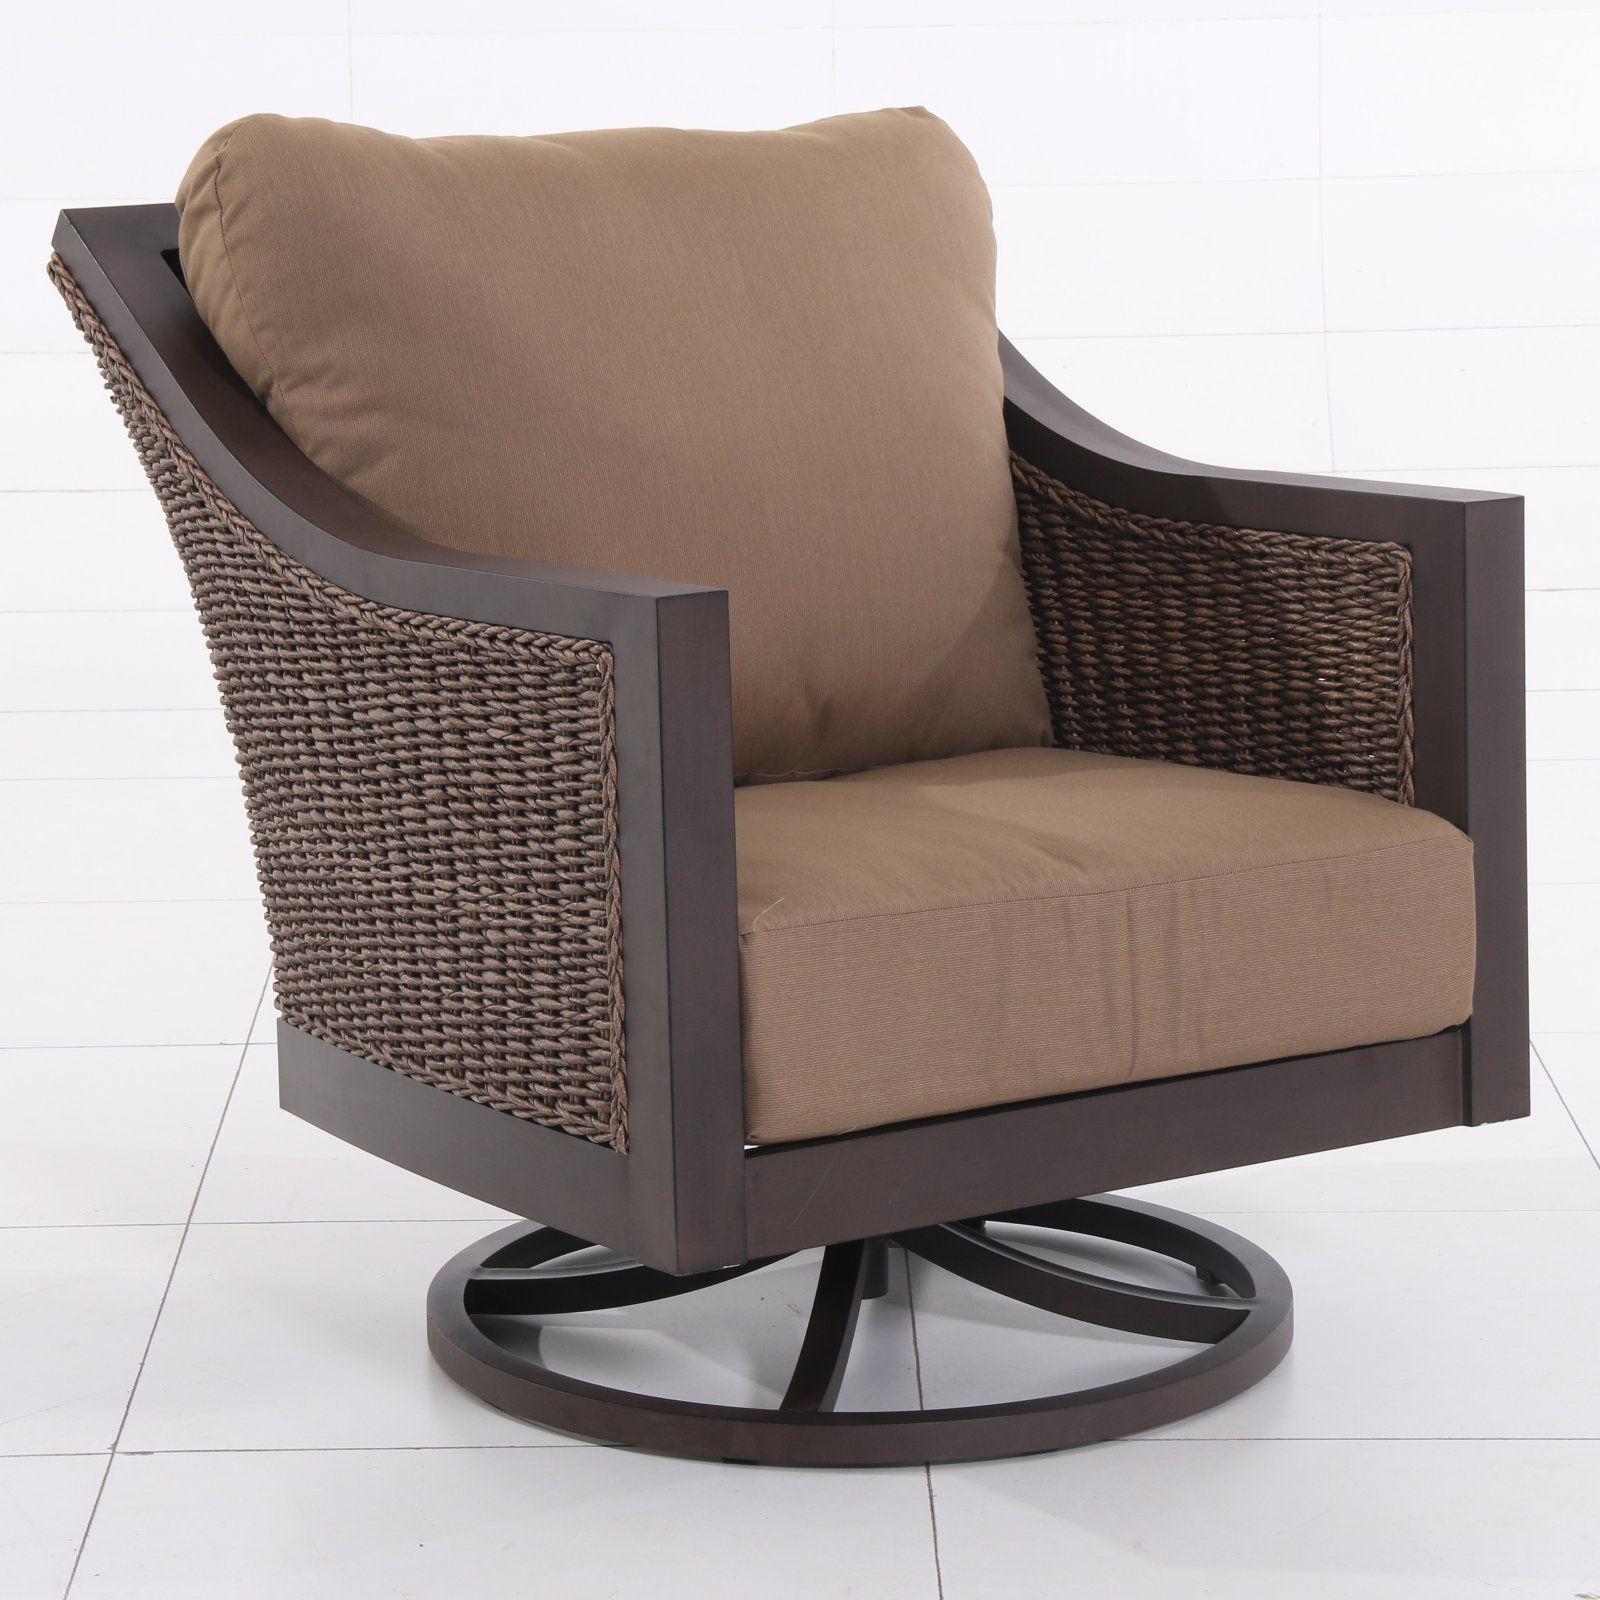 Royal Garden Biscarta Aluminum and Wicker Patio Swivel Lounge Chair with Cushions